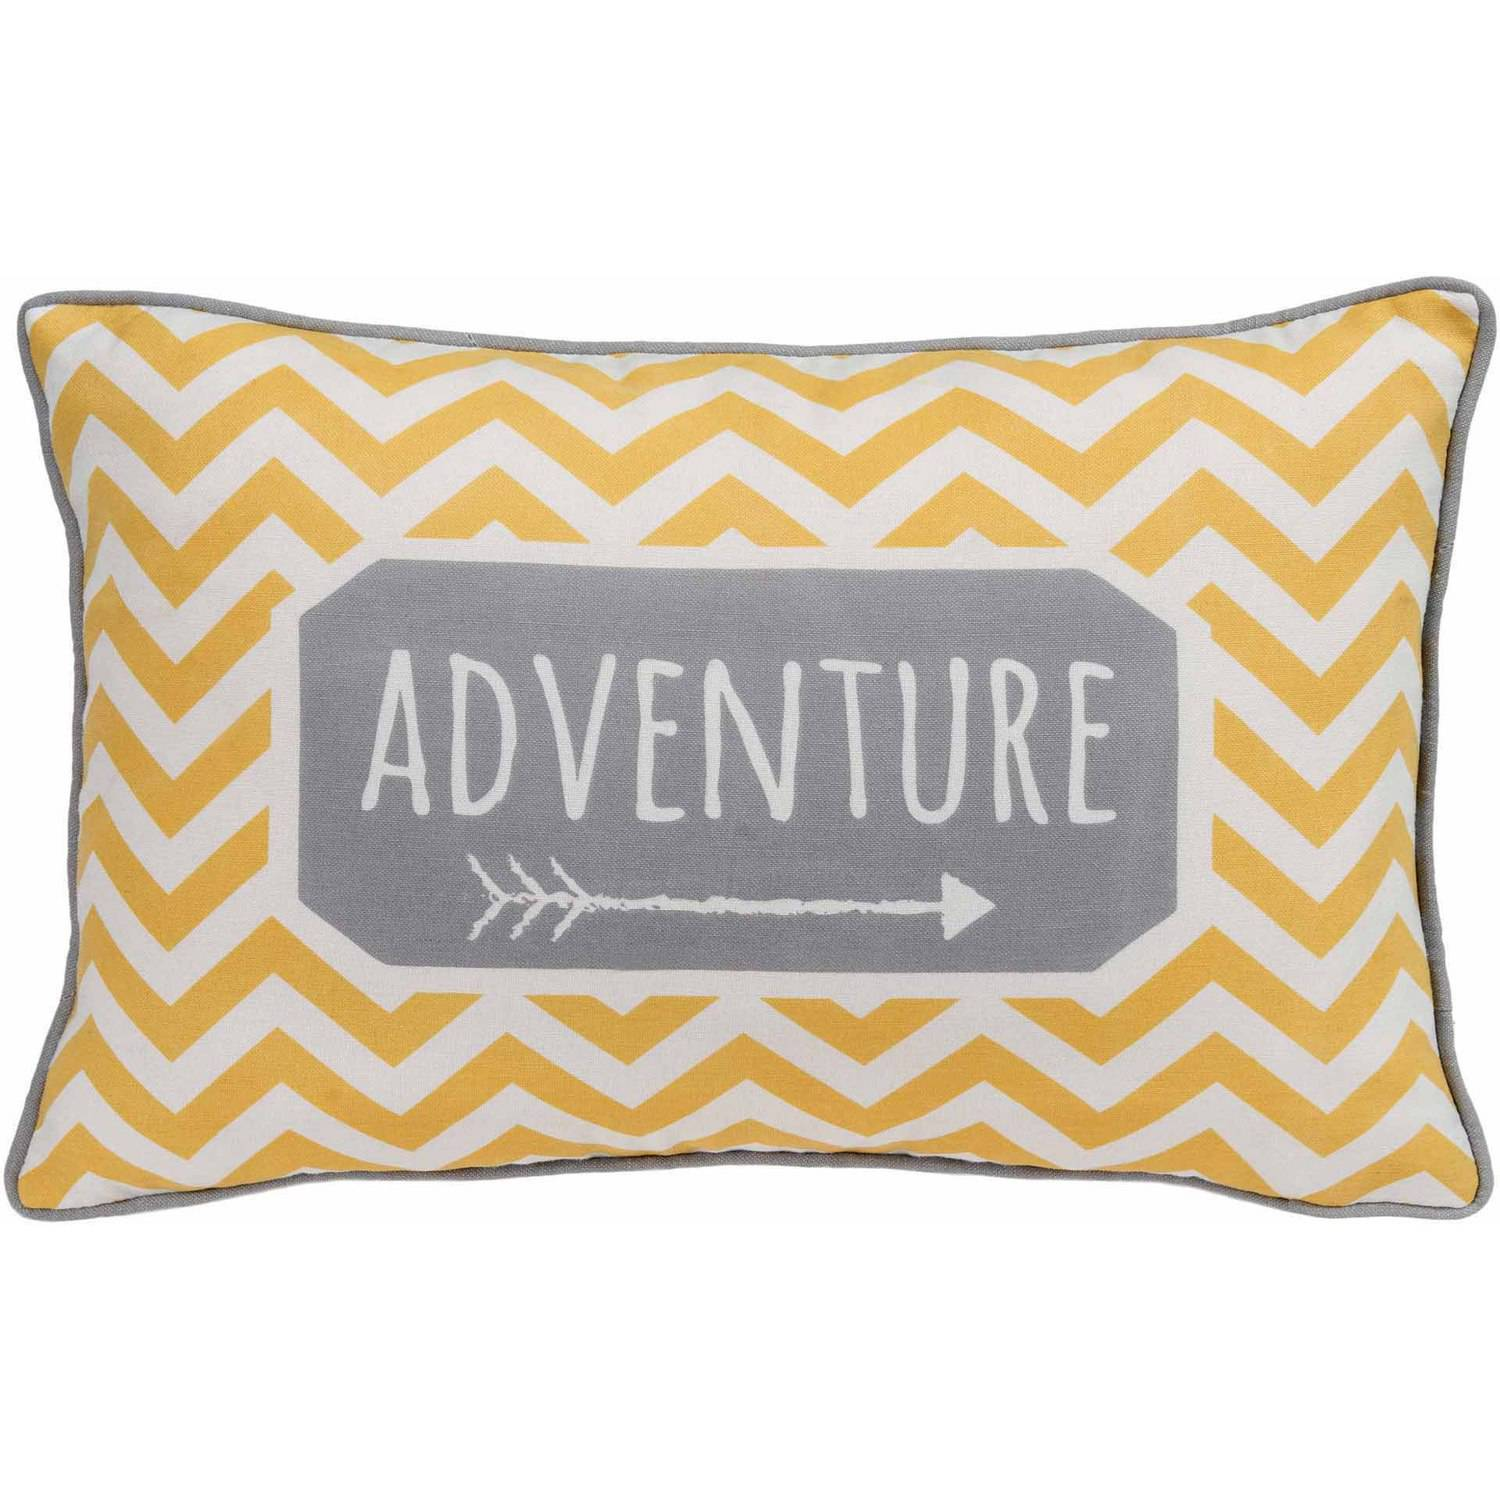 Better homes and gardens chevron adventure yellow and grey whimsical